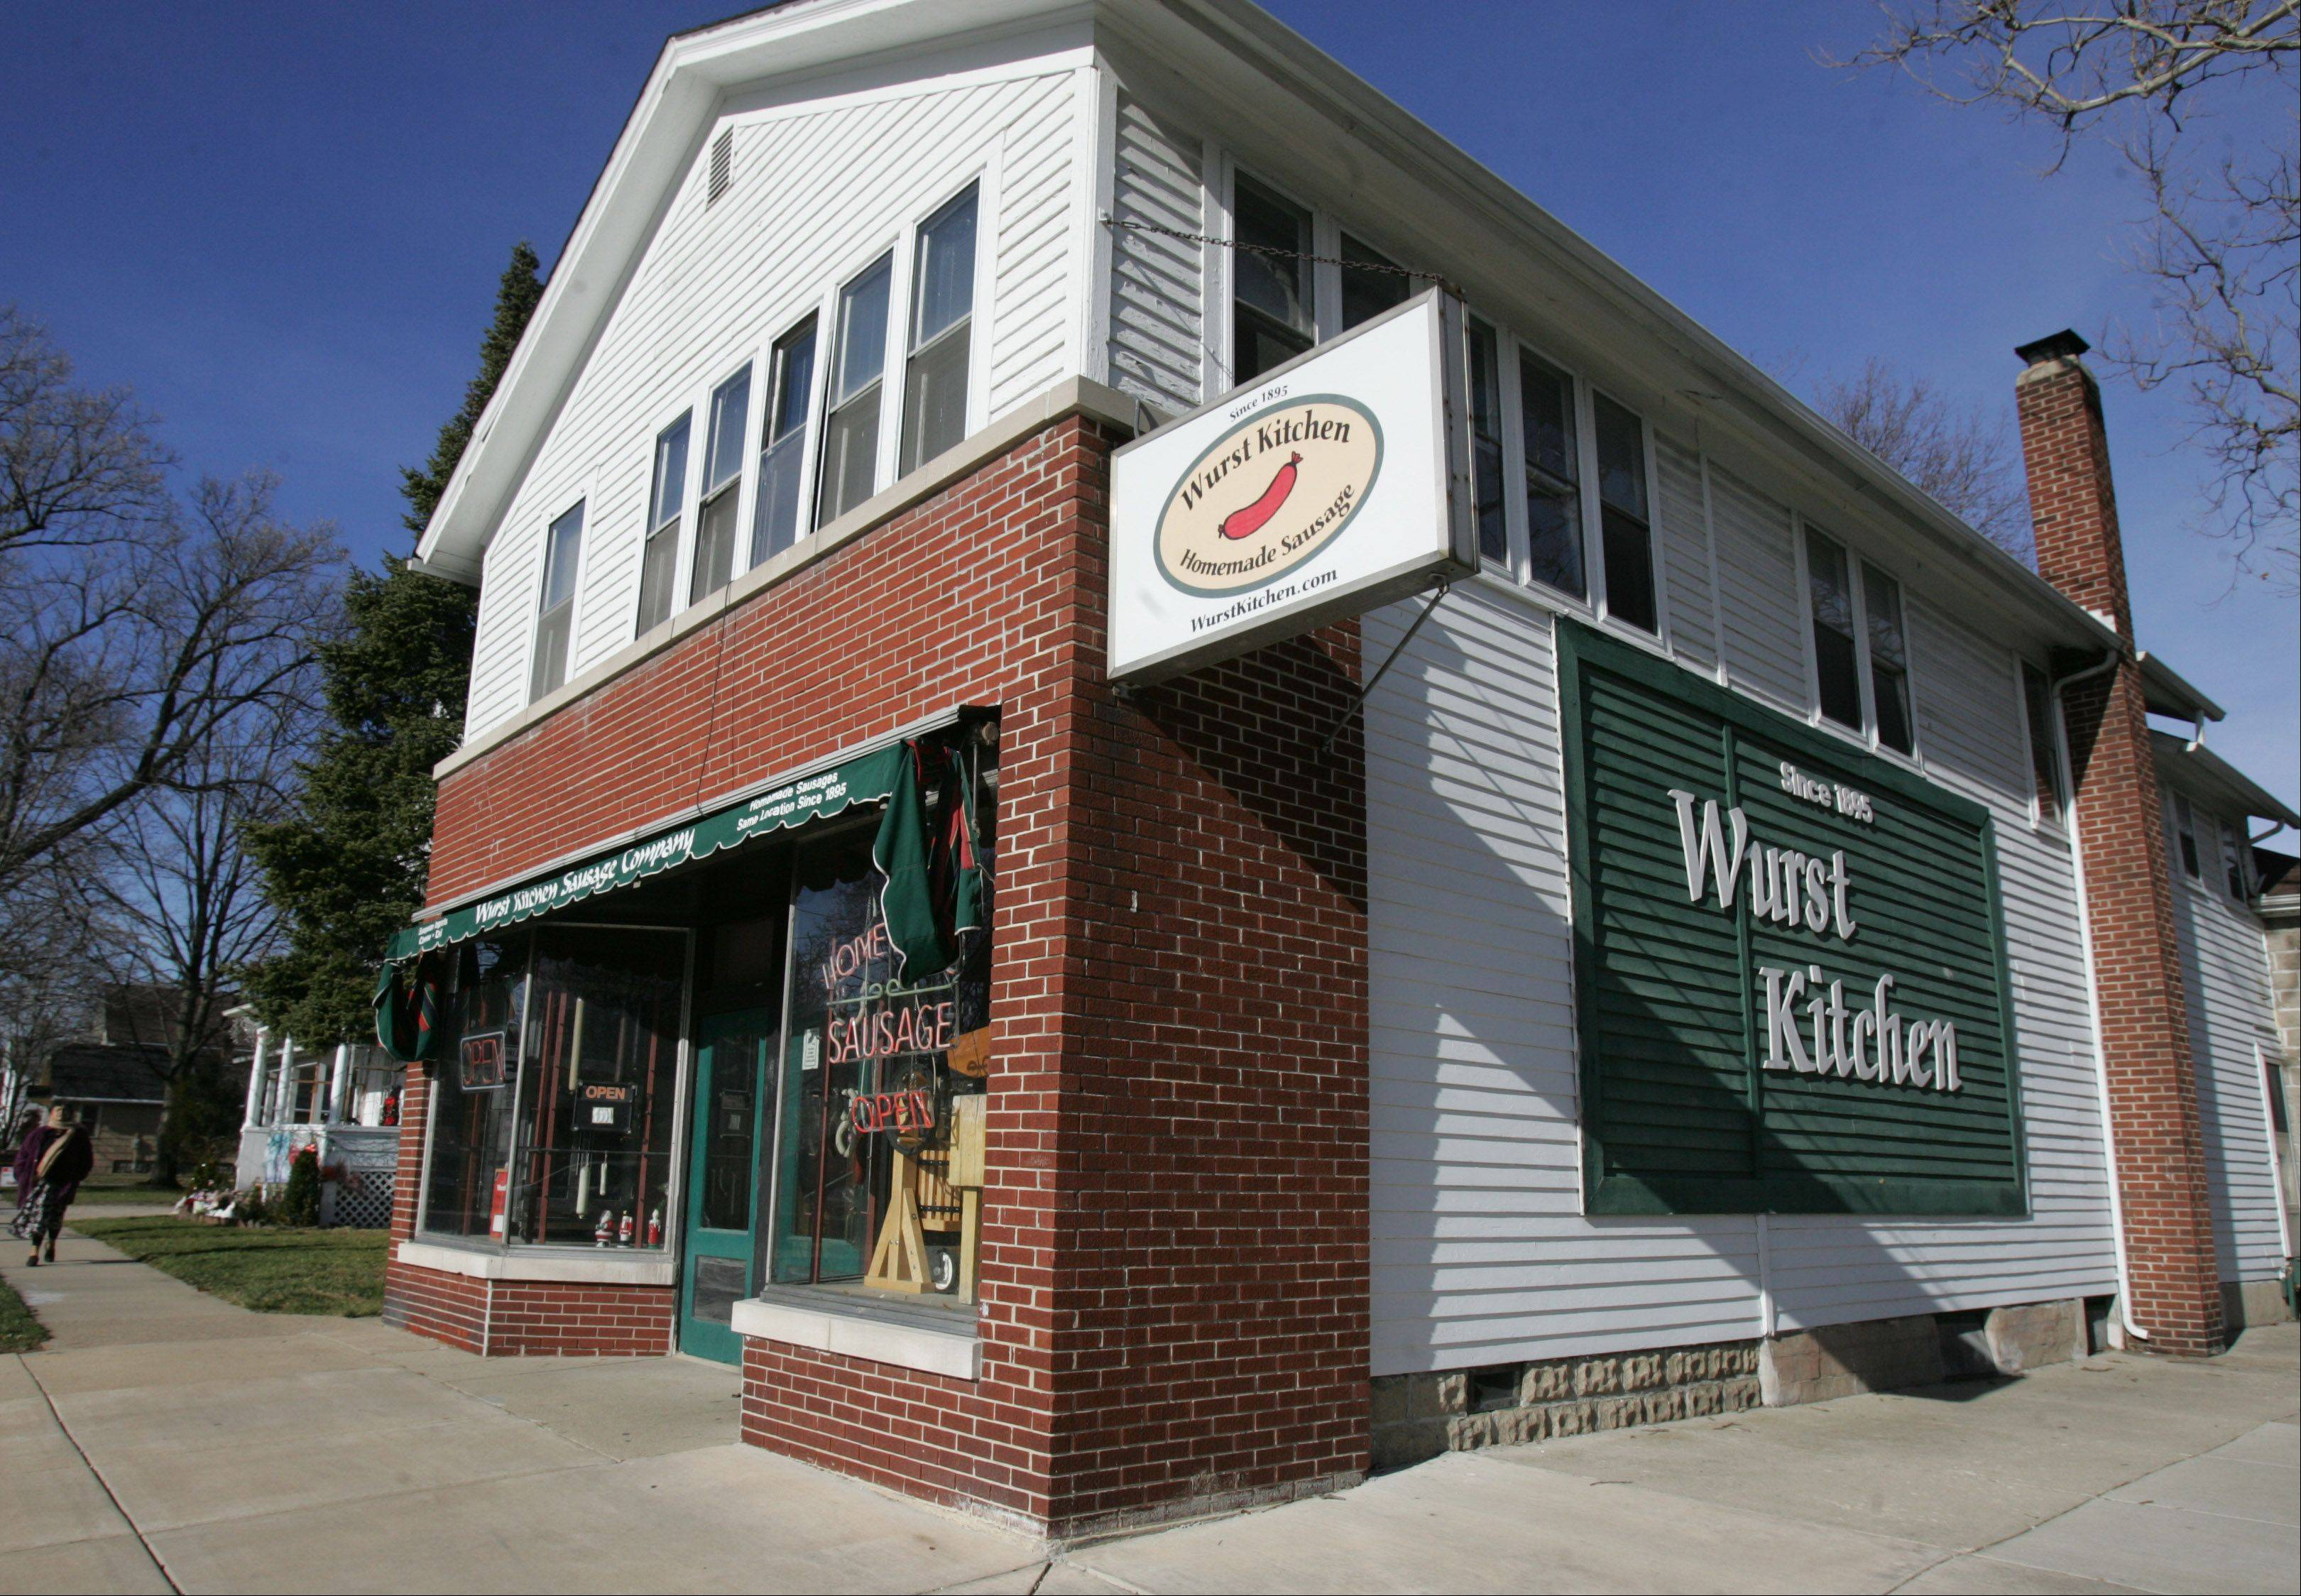 The Wurst Kitchen, at 638 2nd Ave. and Union Street, is the oldest retail shop in Aurora.